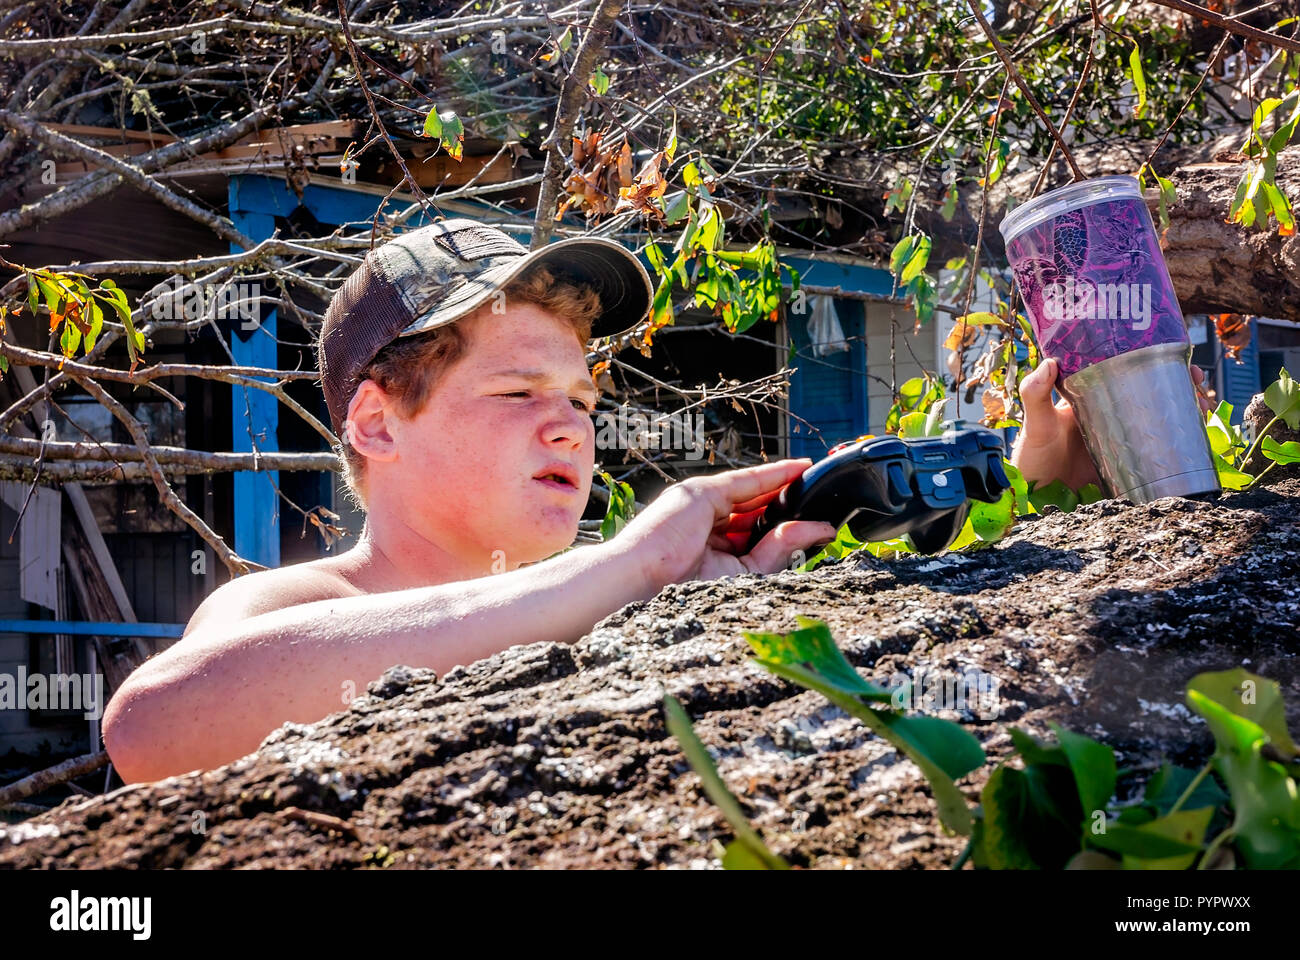 Jayden Davis, 14, examines a game controller he retrieved from his destroyed home after Hurricane Michael, Oct. 21, 2018, in Grand Ridge, Florida. - Stock Image